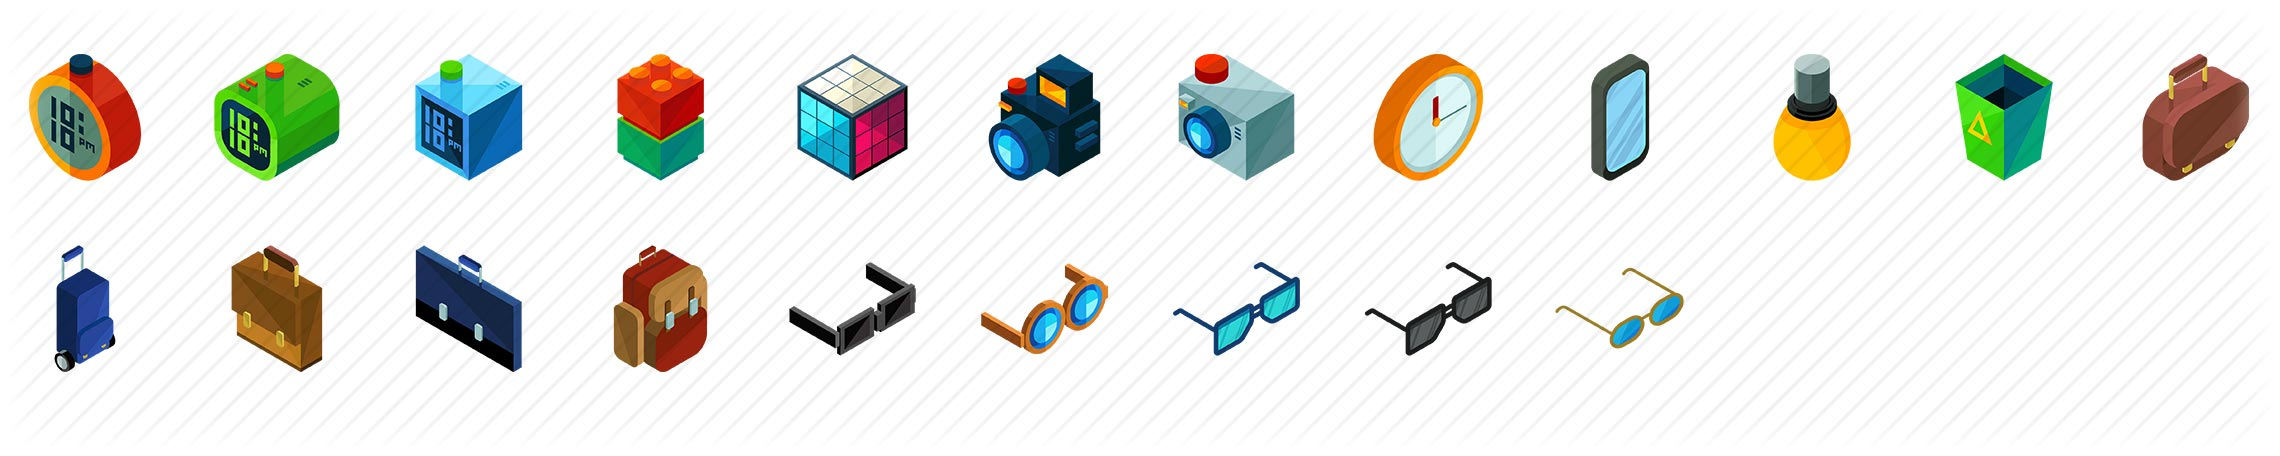 Interior Accessories Isometric Icons